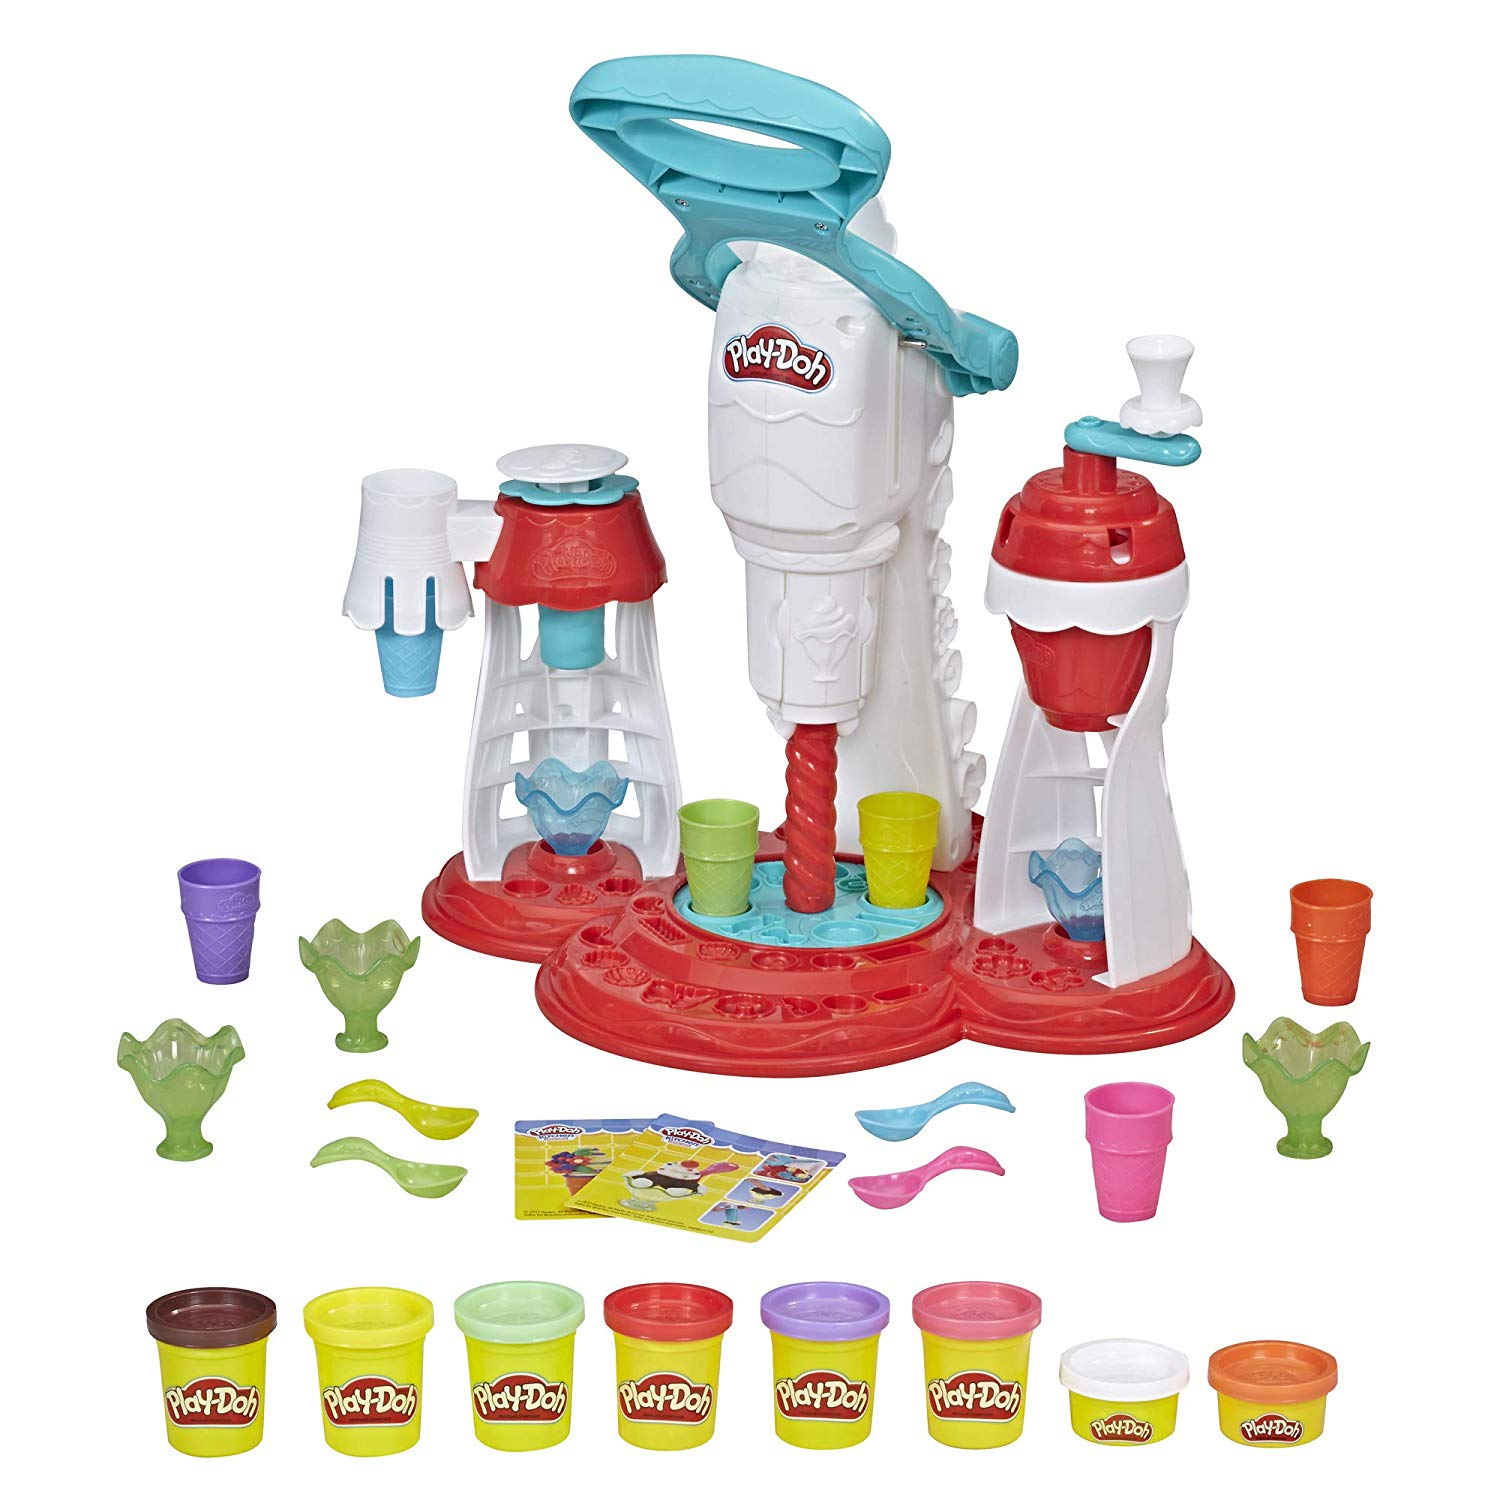 Play Doh Kitchen Creations Ultimate Swirl Ice Cream Maker